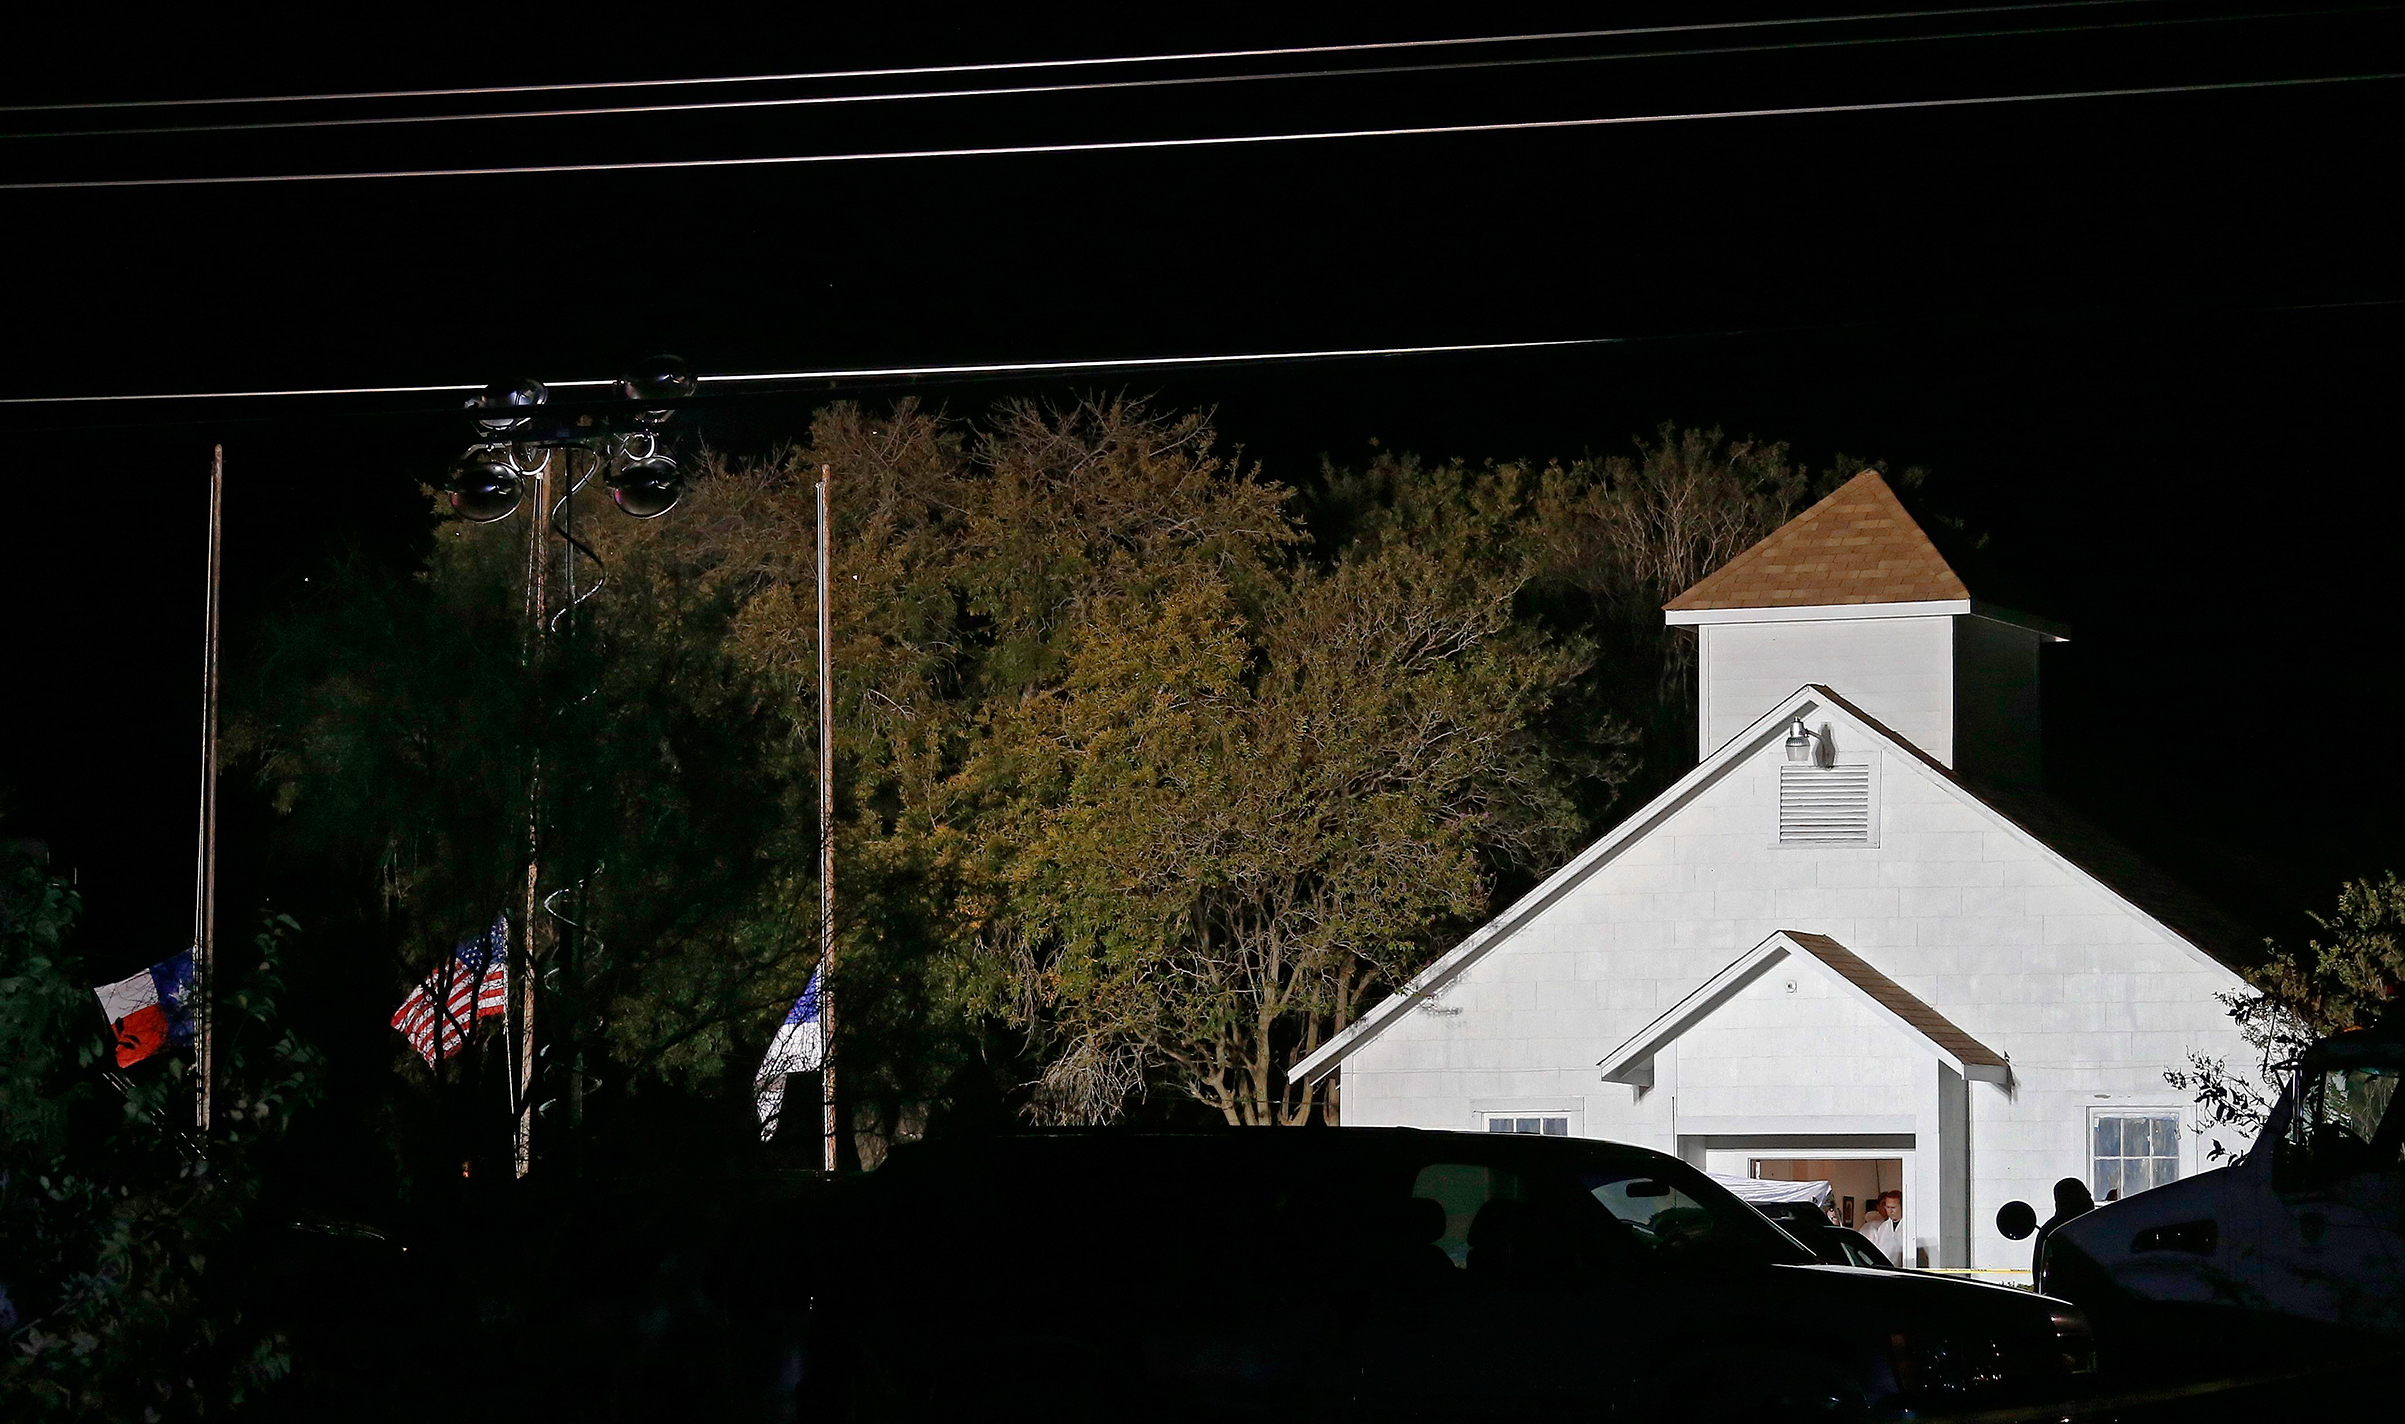 The First Baptist Church in Sutherland Springs is illuminated by raised lamps as investigators work, hours after the shooting on Nov. 5